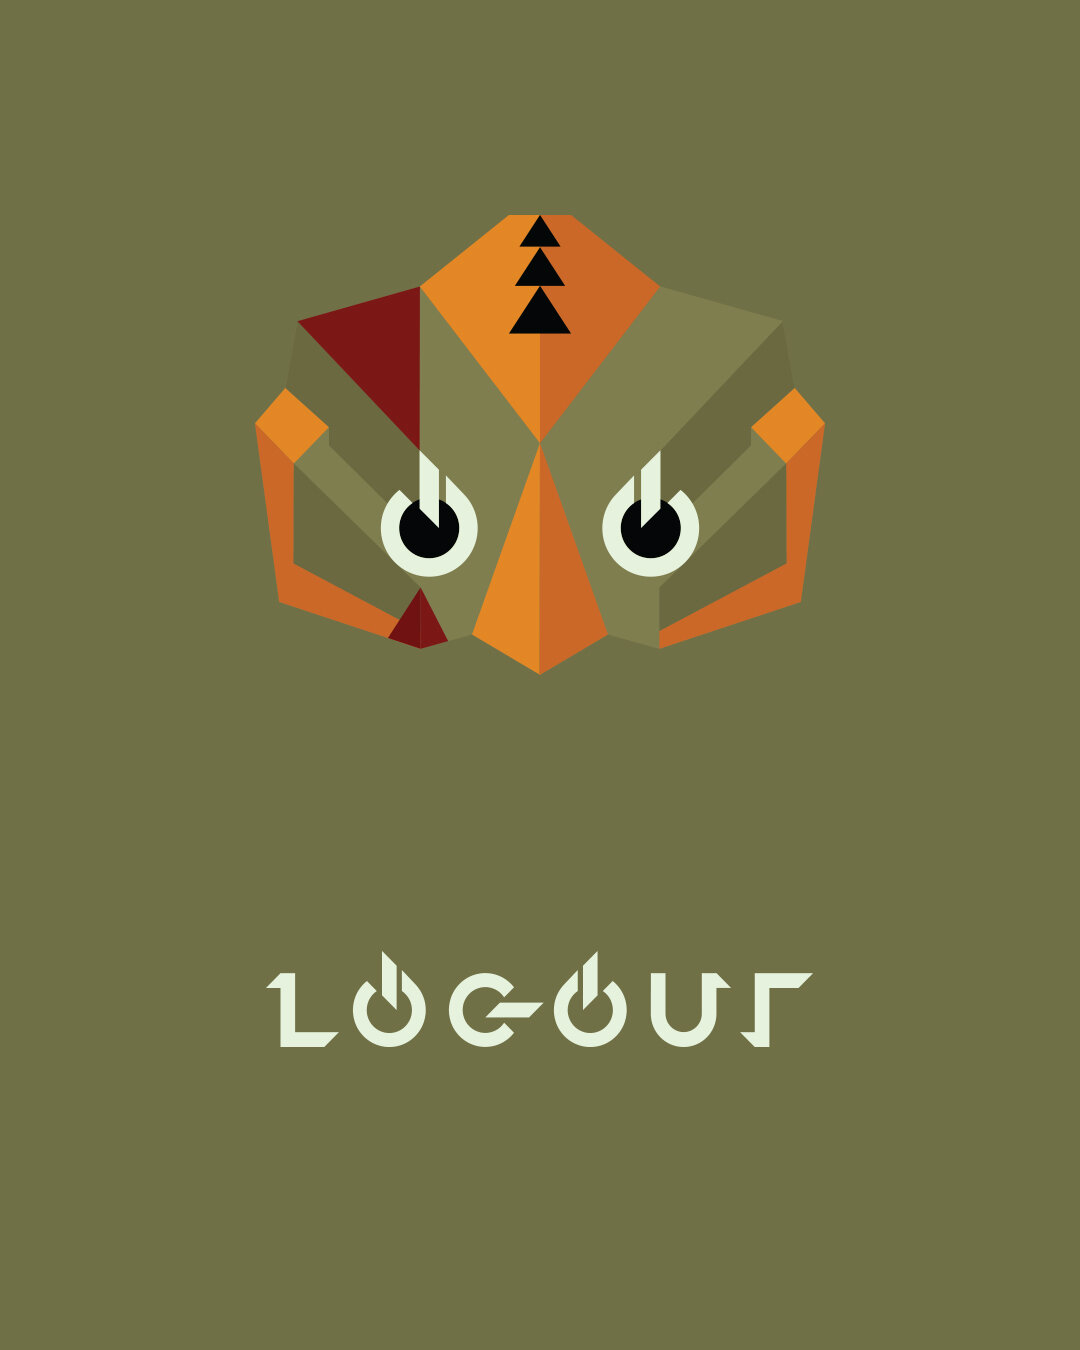 mixed_media_logout_mask_design_andre_levy_music_logo.jpg